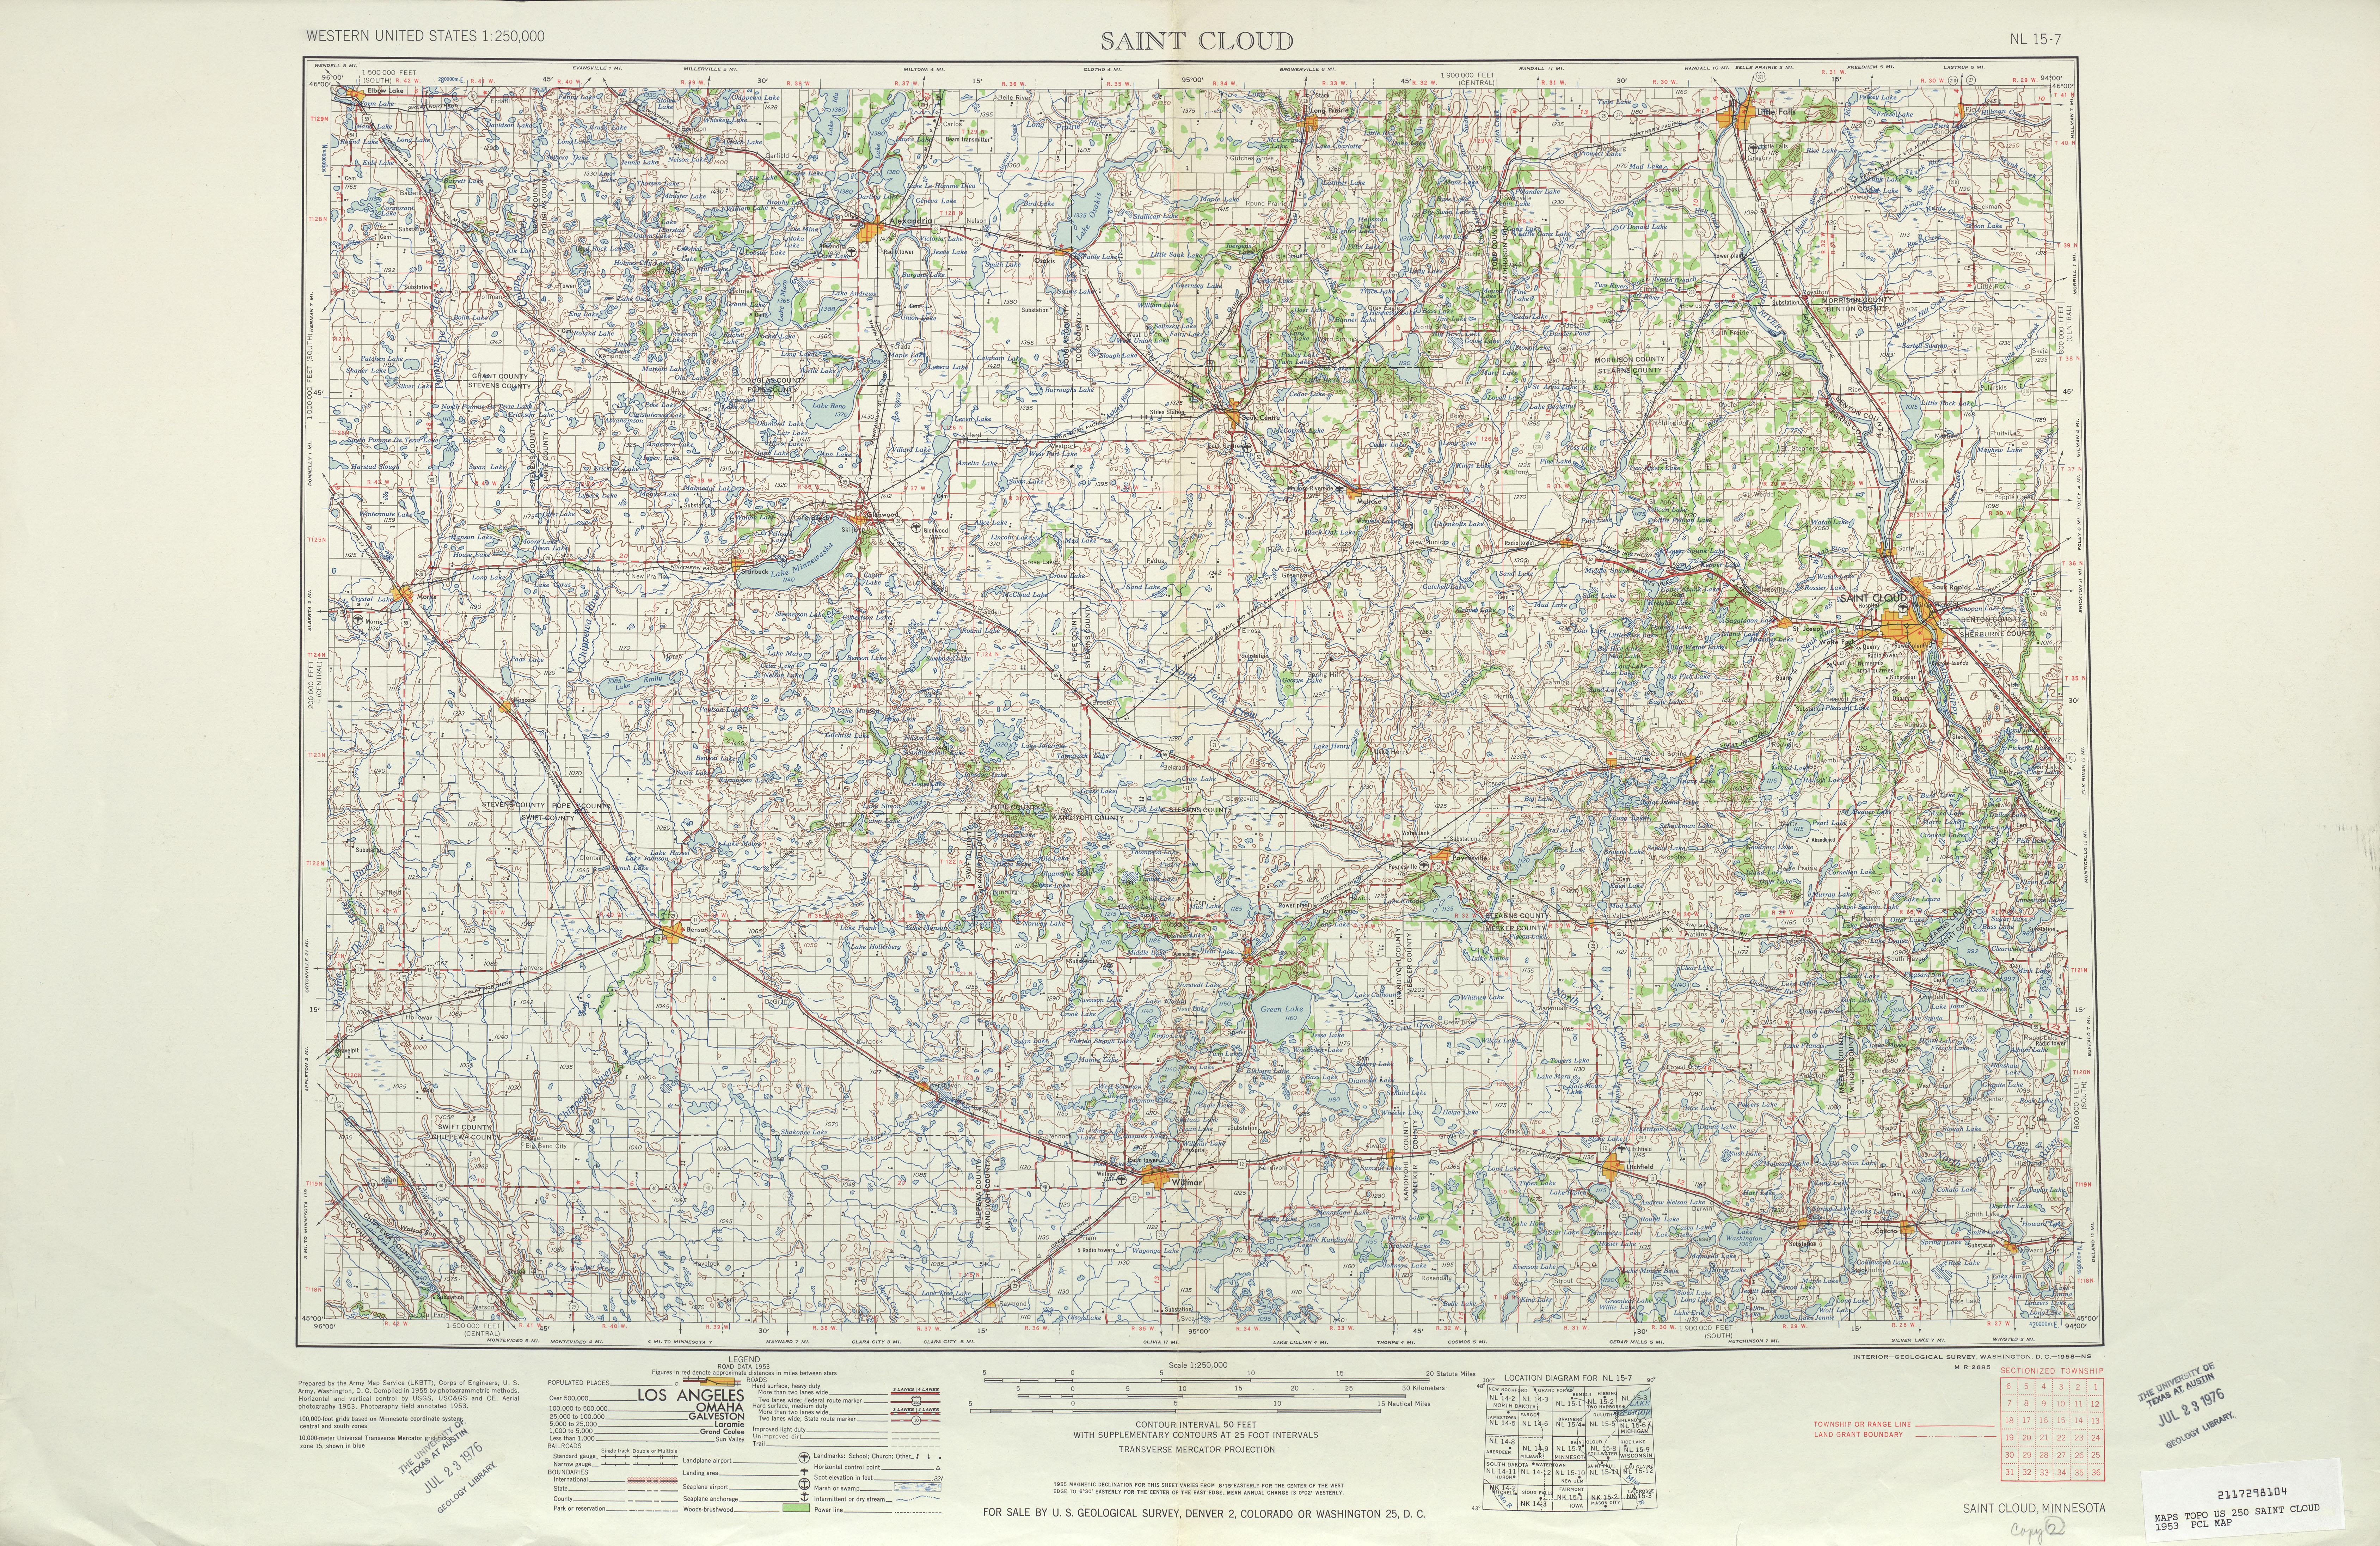 Saint Cloud Topographic Map Sheet, United States 1953